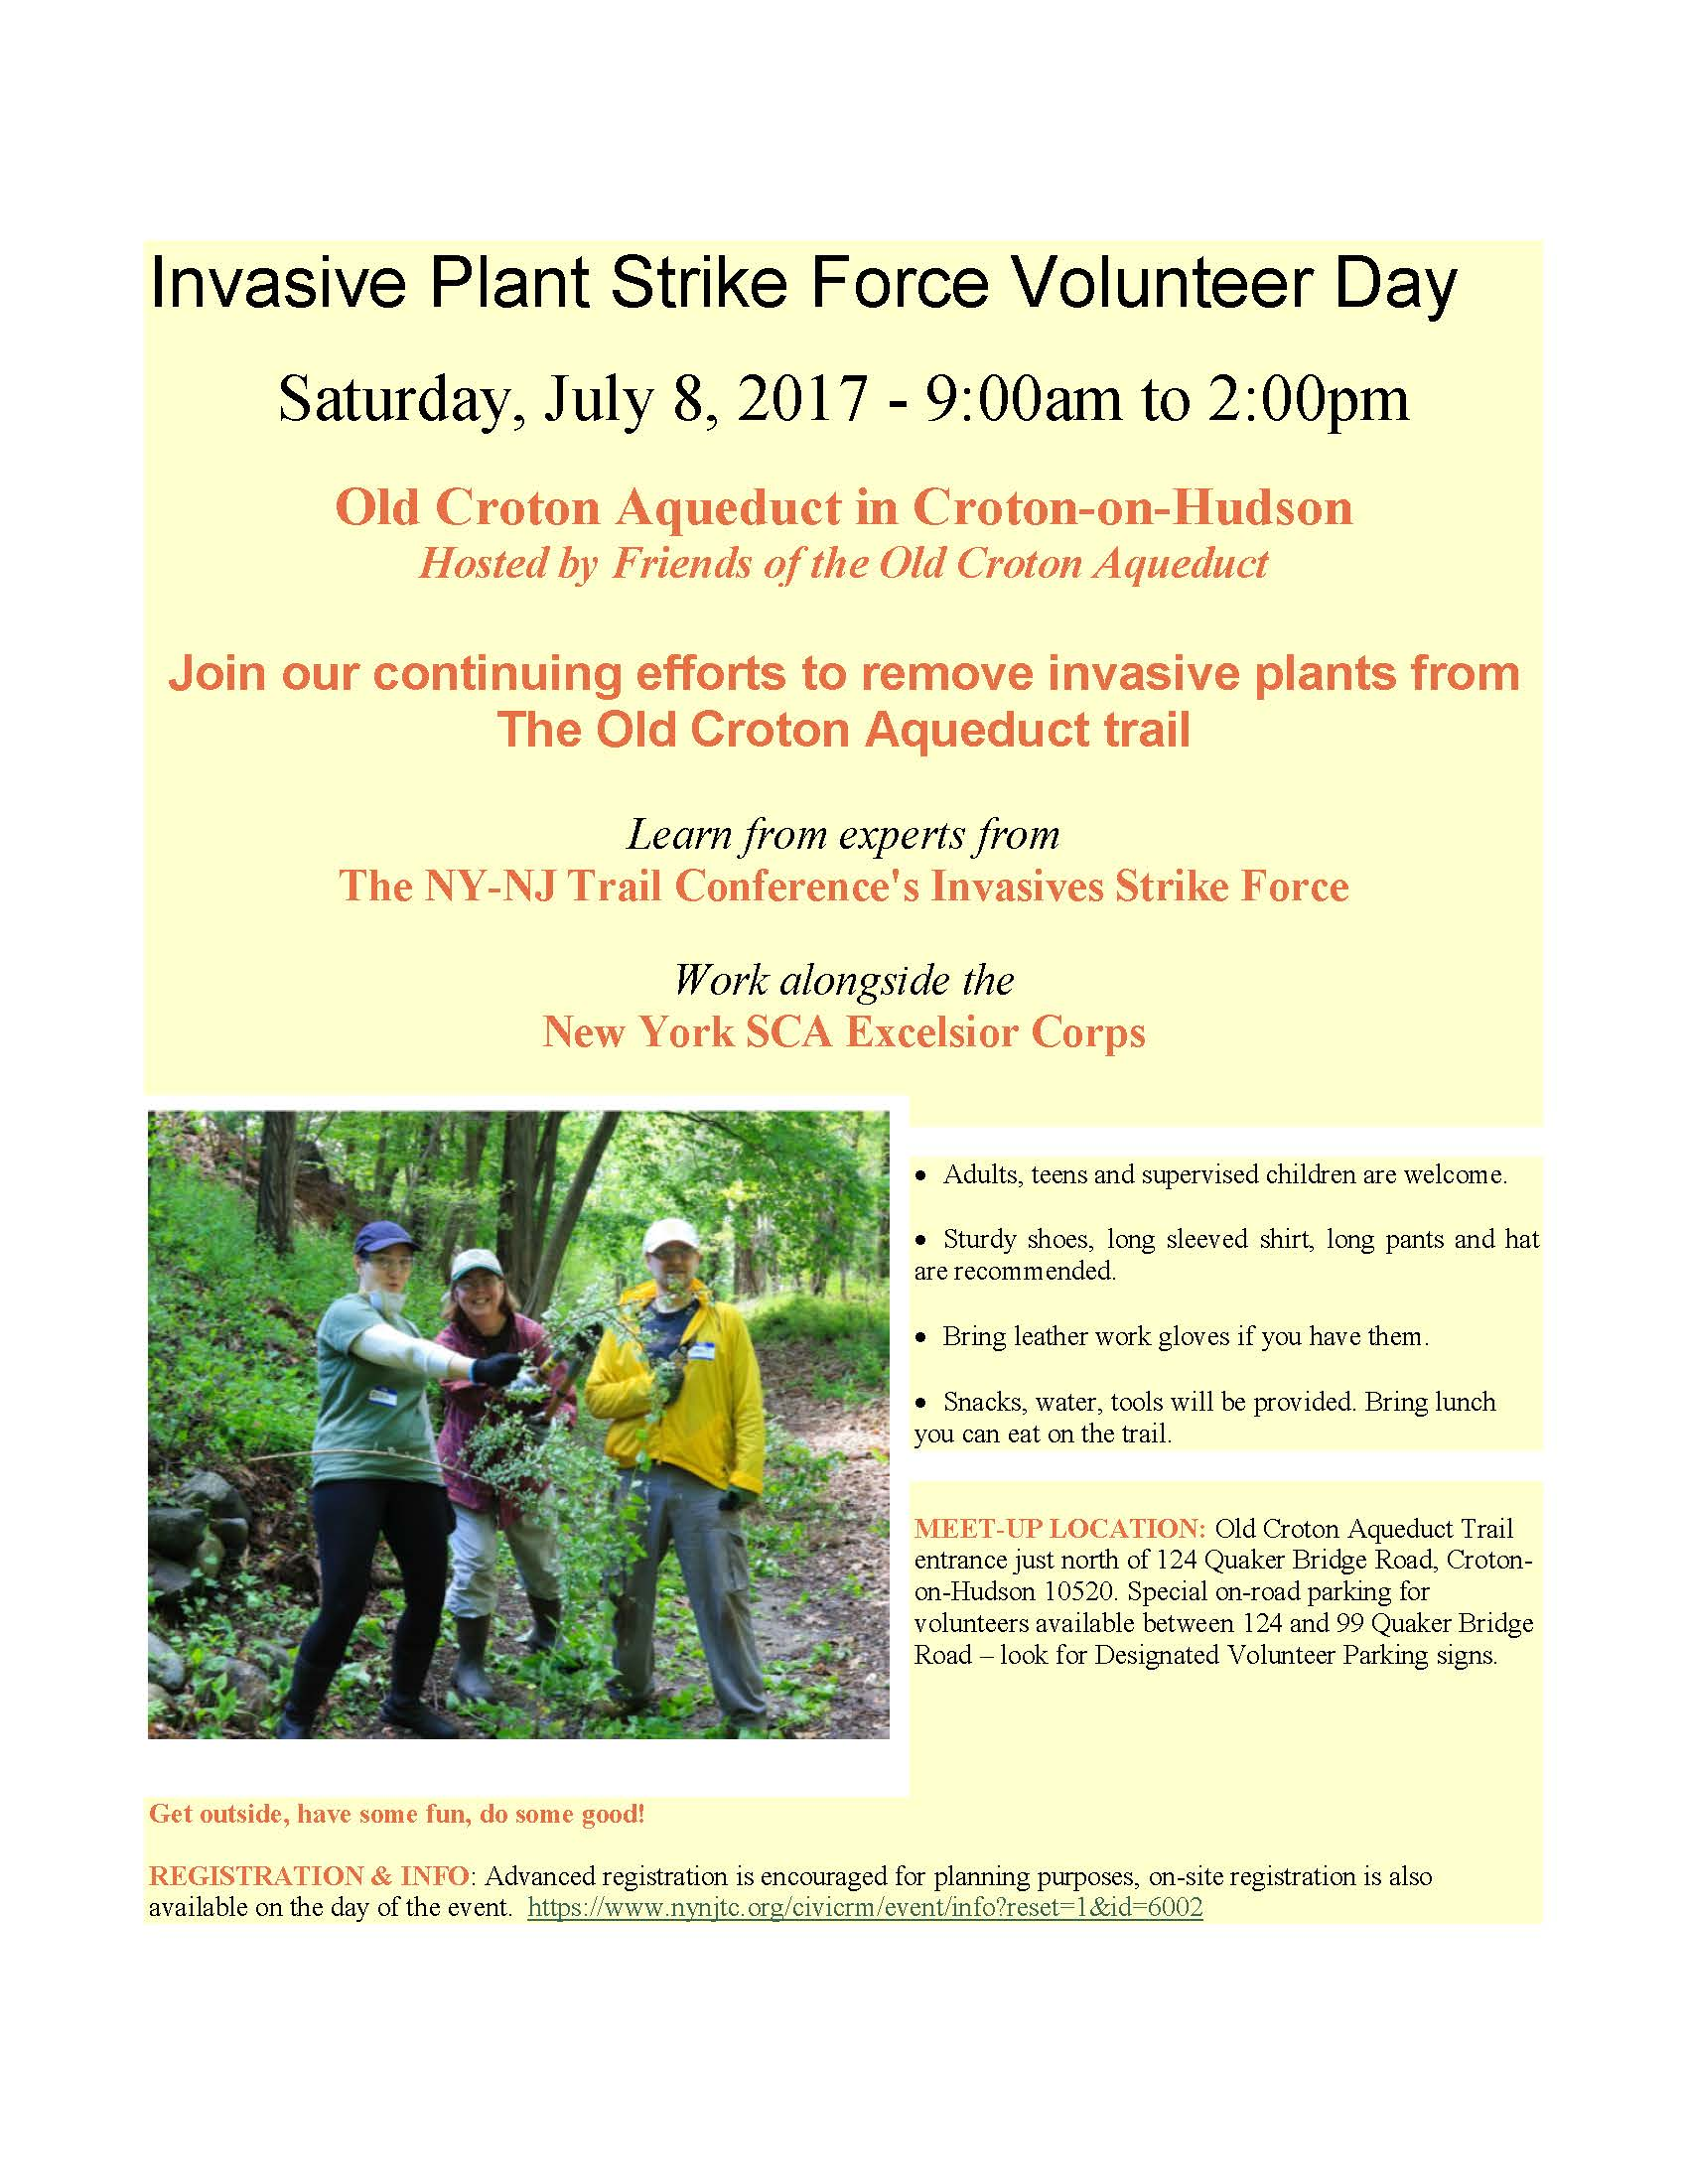 Invasive Plant Strike Force Volunteer Day for web posting pdf version